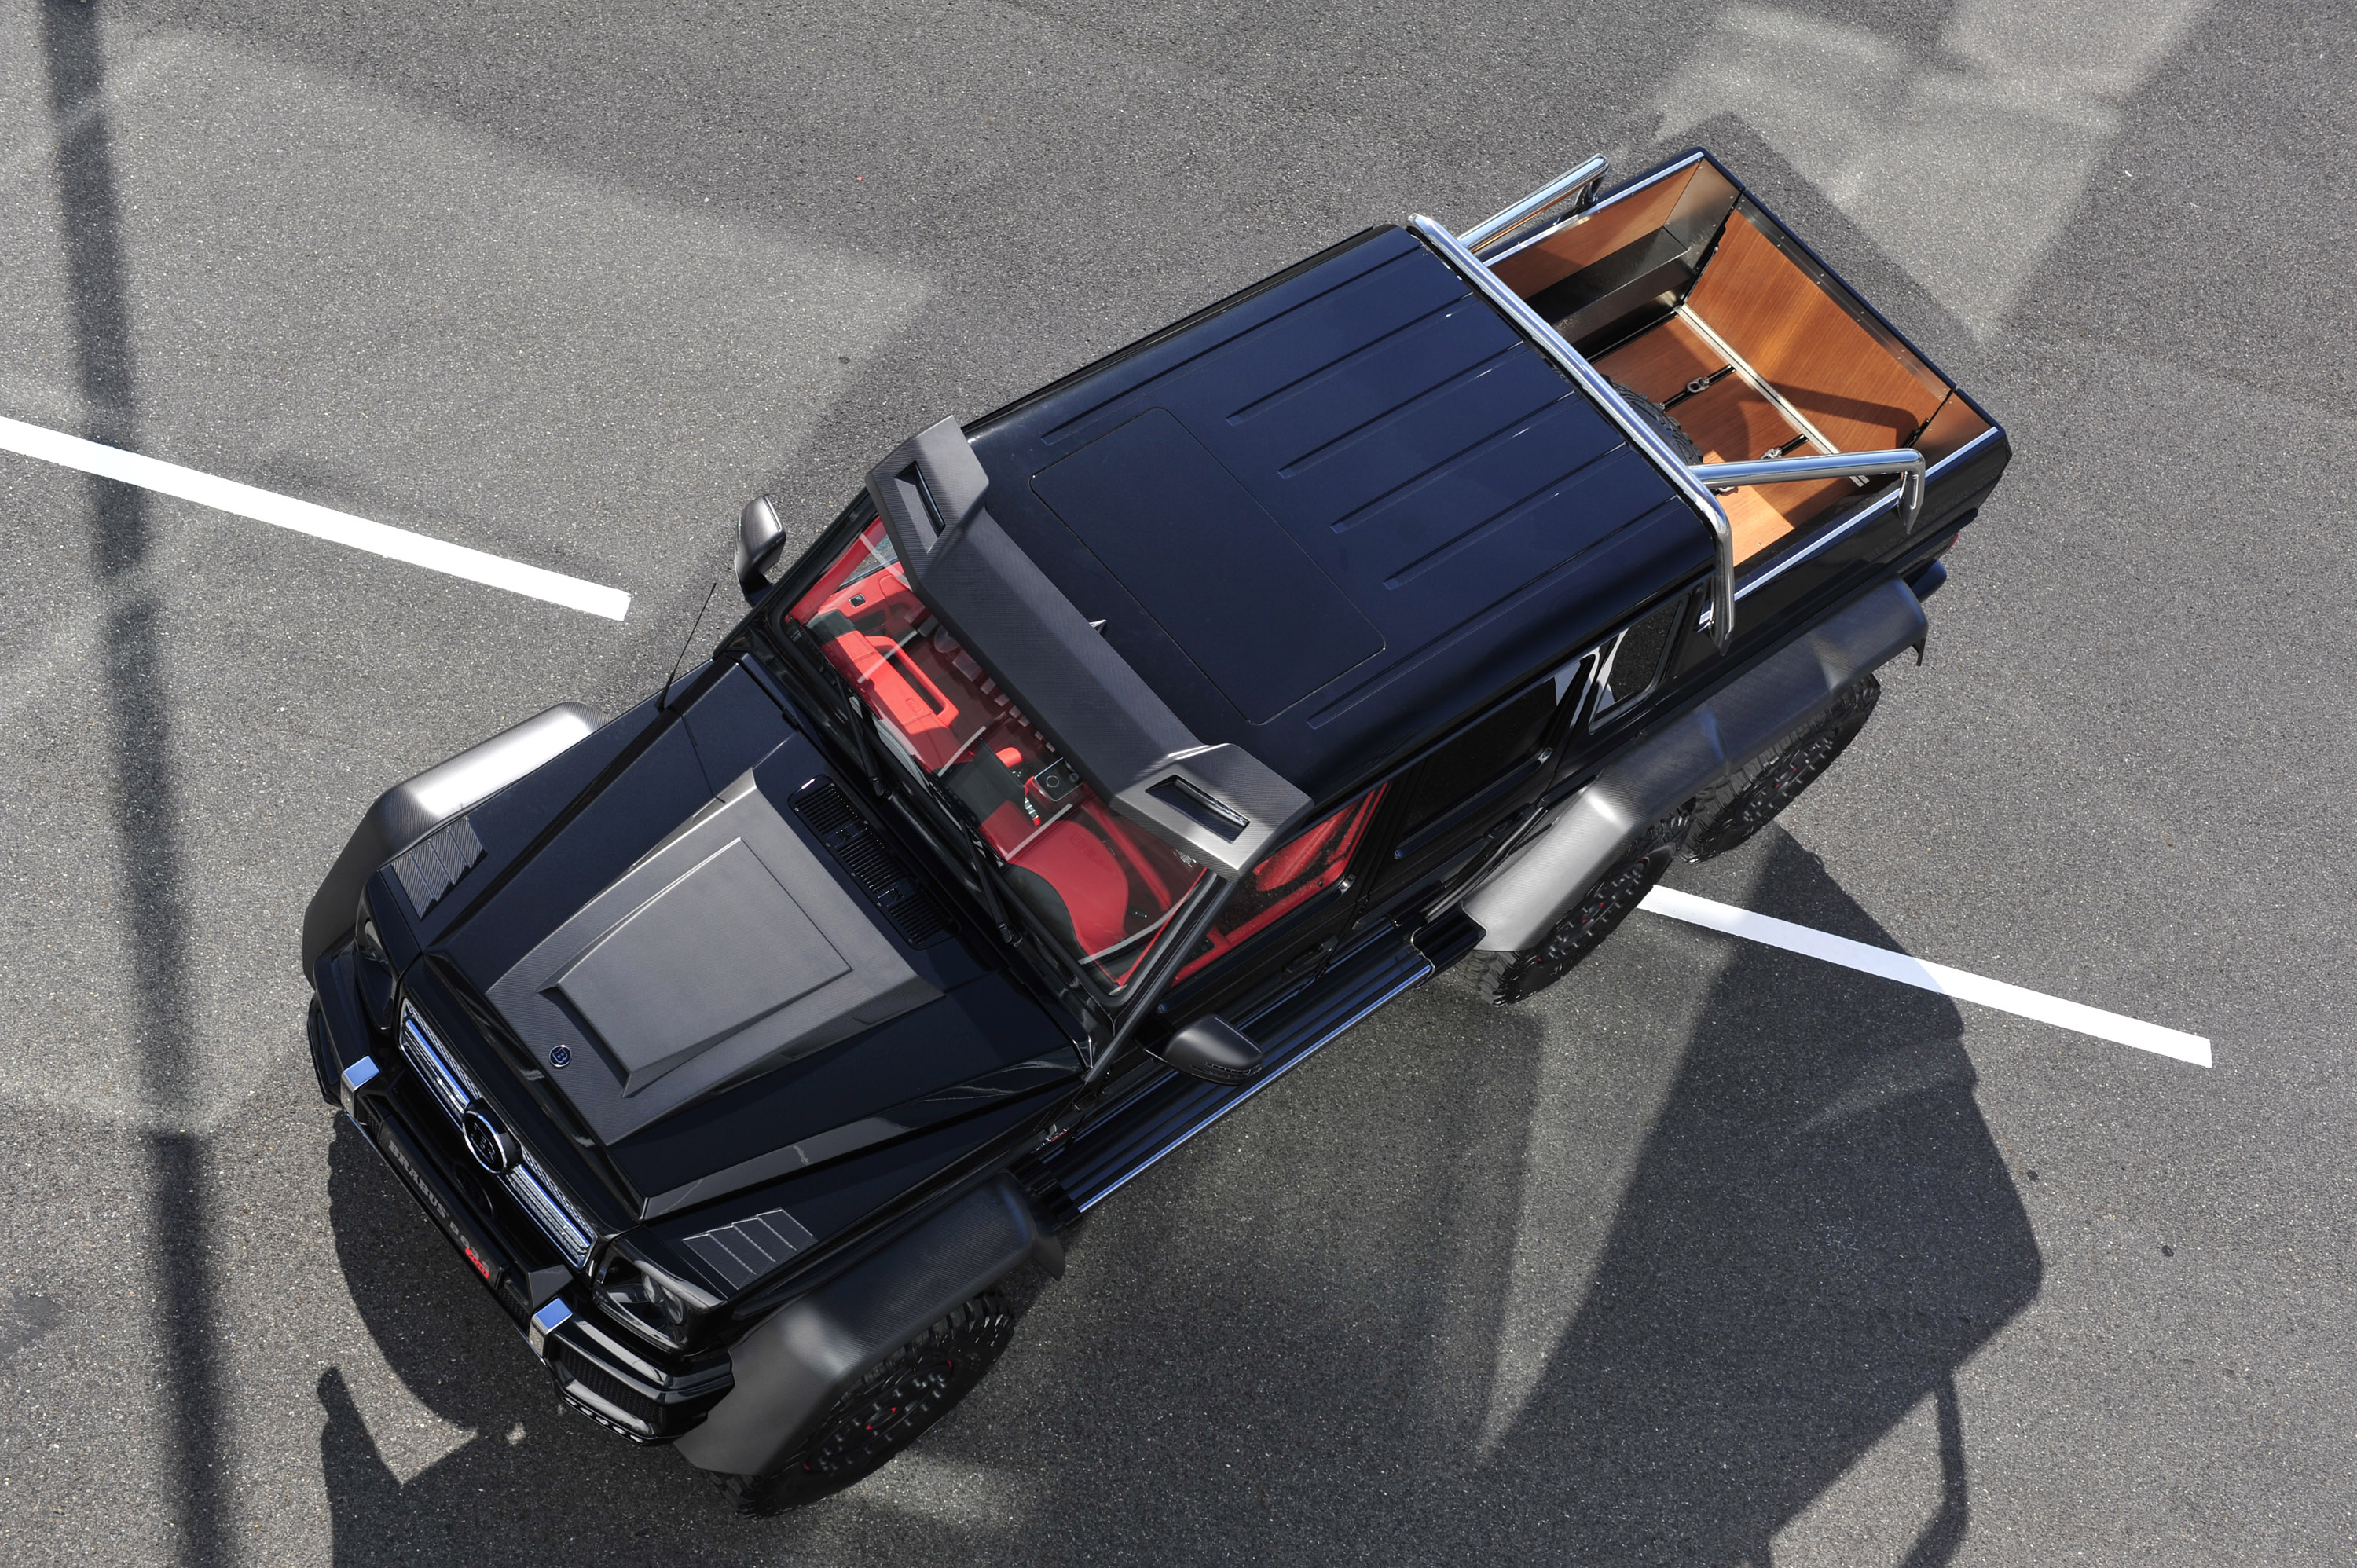 2014 brabus b63s 700 6x6 mercedes benz g class hd pictures. Black Bedroom Furniture Sets. Home Design Ideas